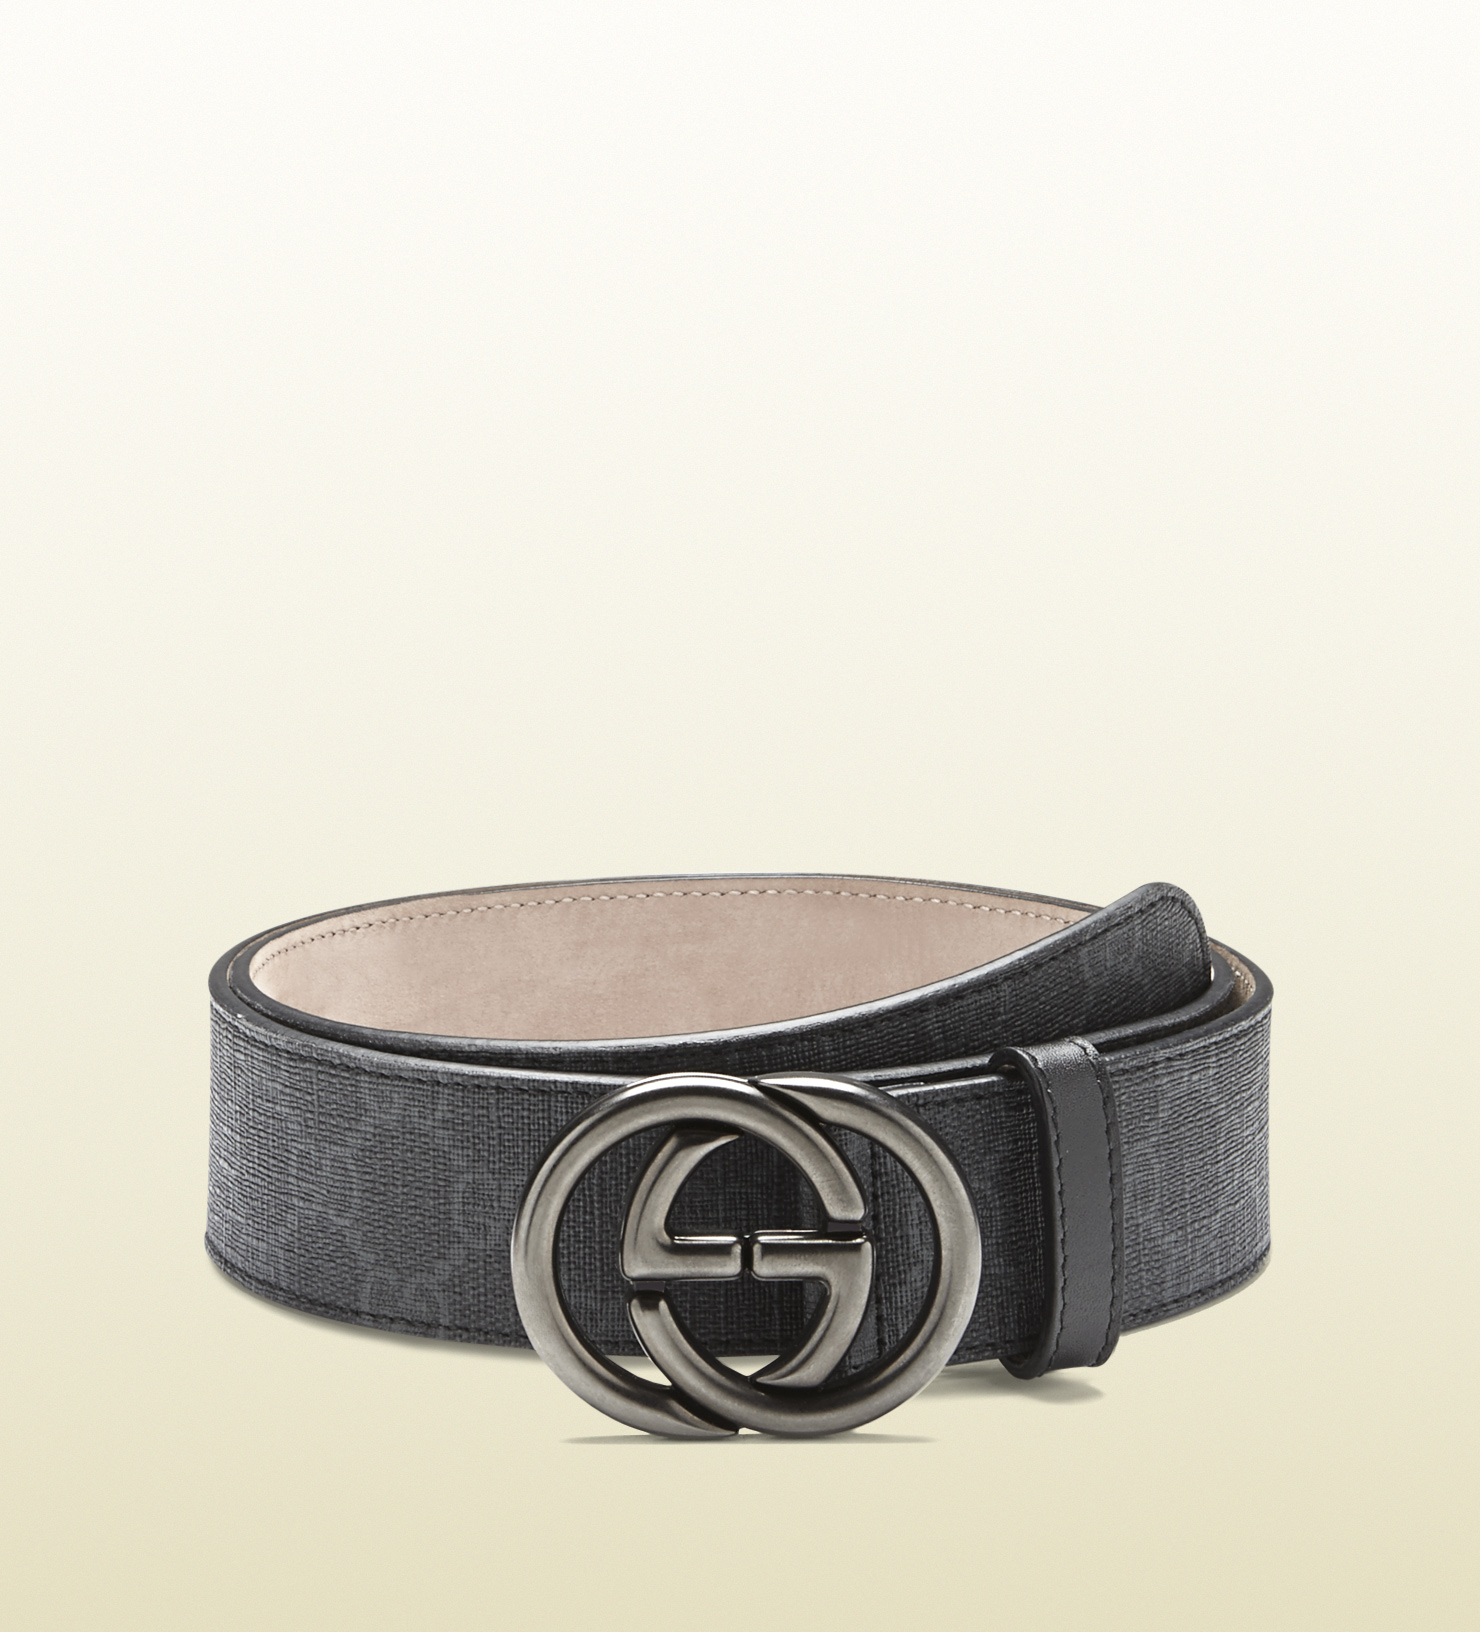 6491e915d80 Gucci Gg Supreme Canvas Belt With Interlocking G Buckle in Black for ...